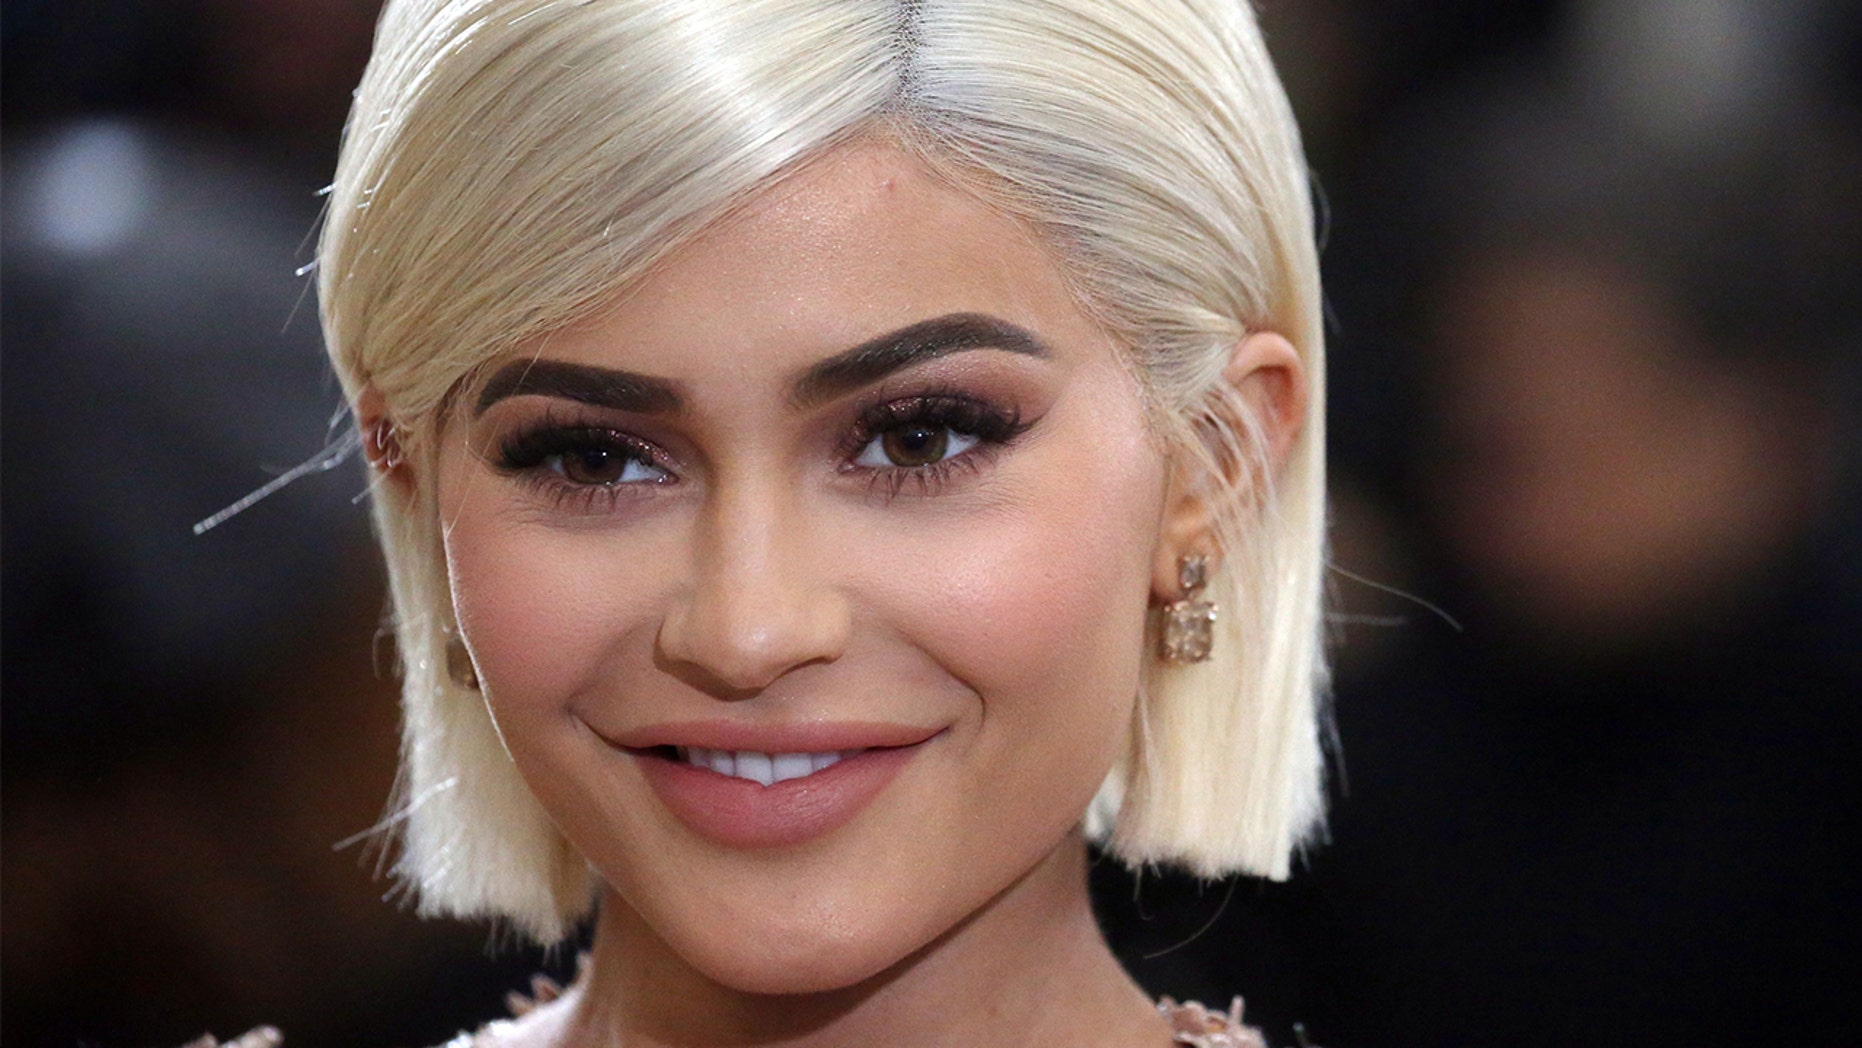 Kylie Jenner teased a new t-shirt launch coming soon